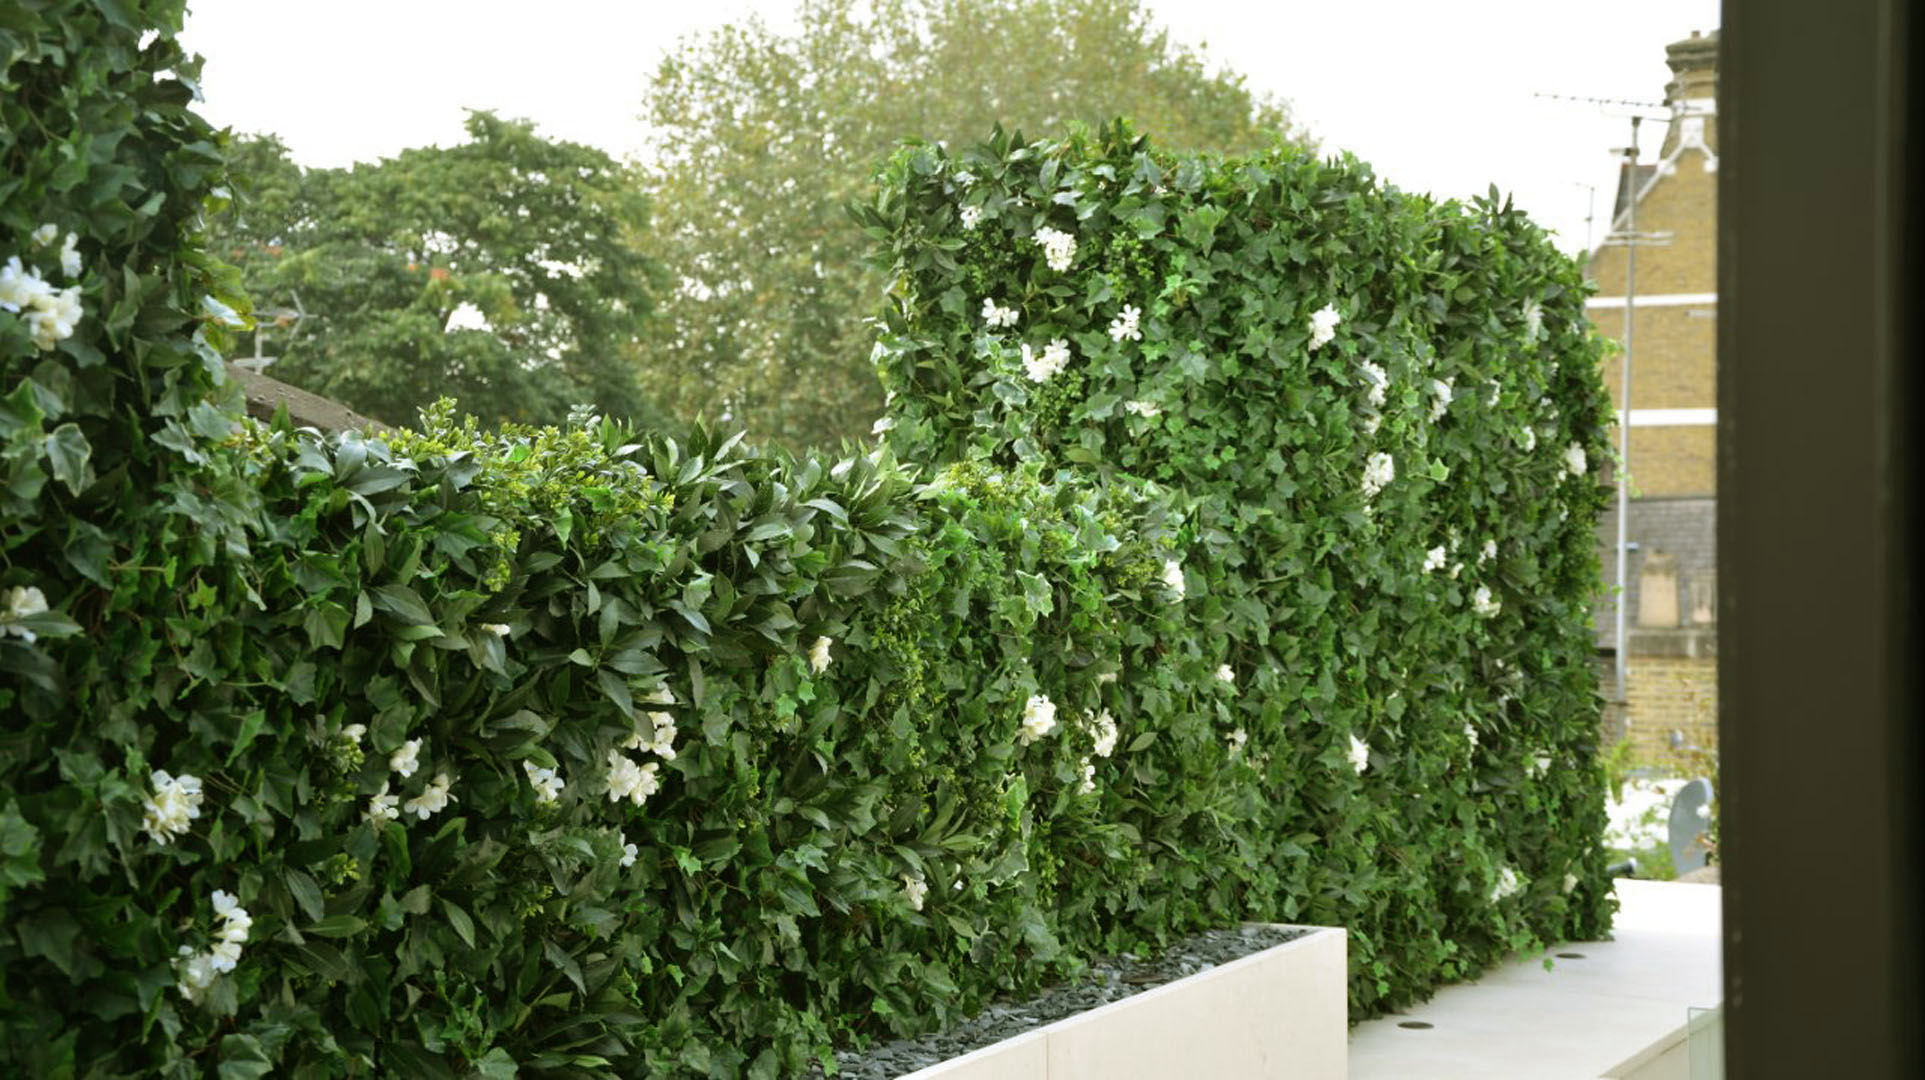 520 Fake Landscapes mews chimney breast living wall 520